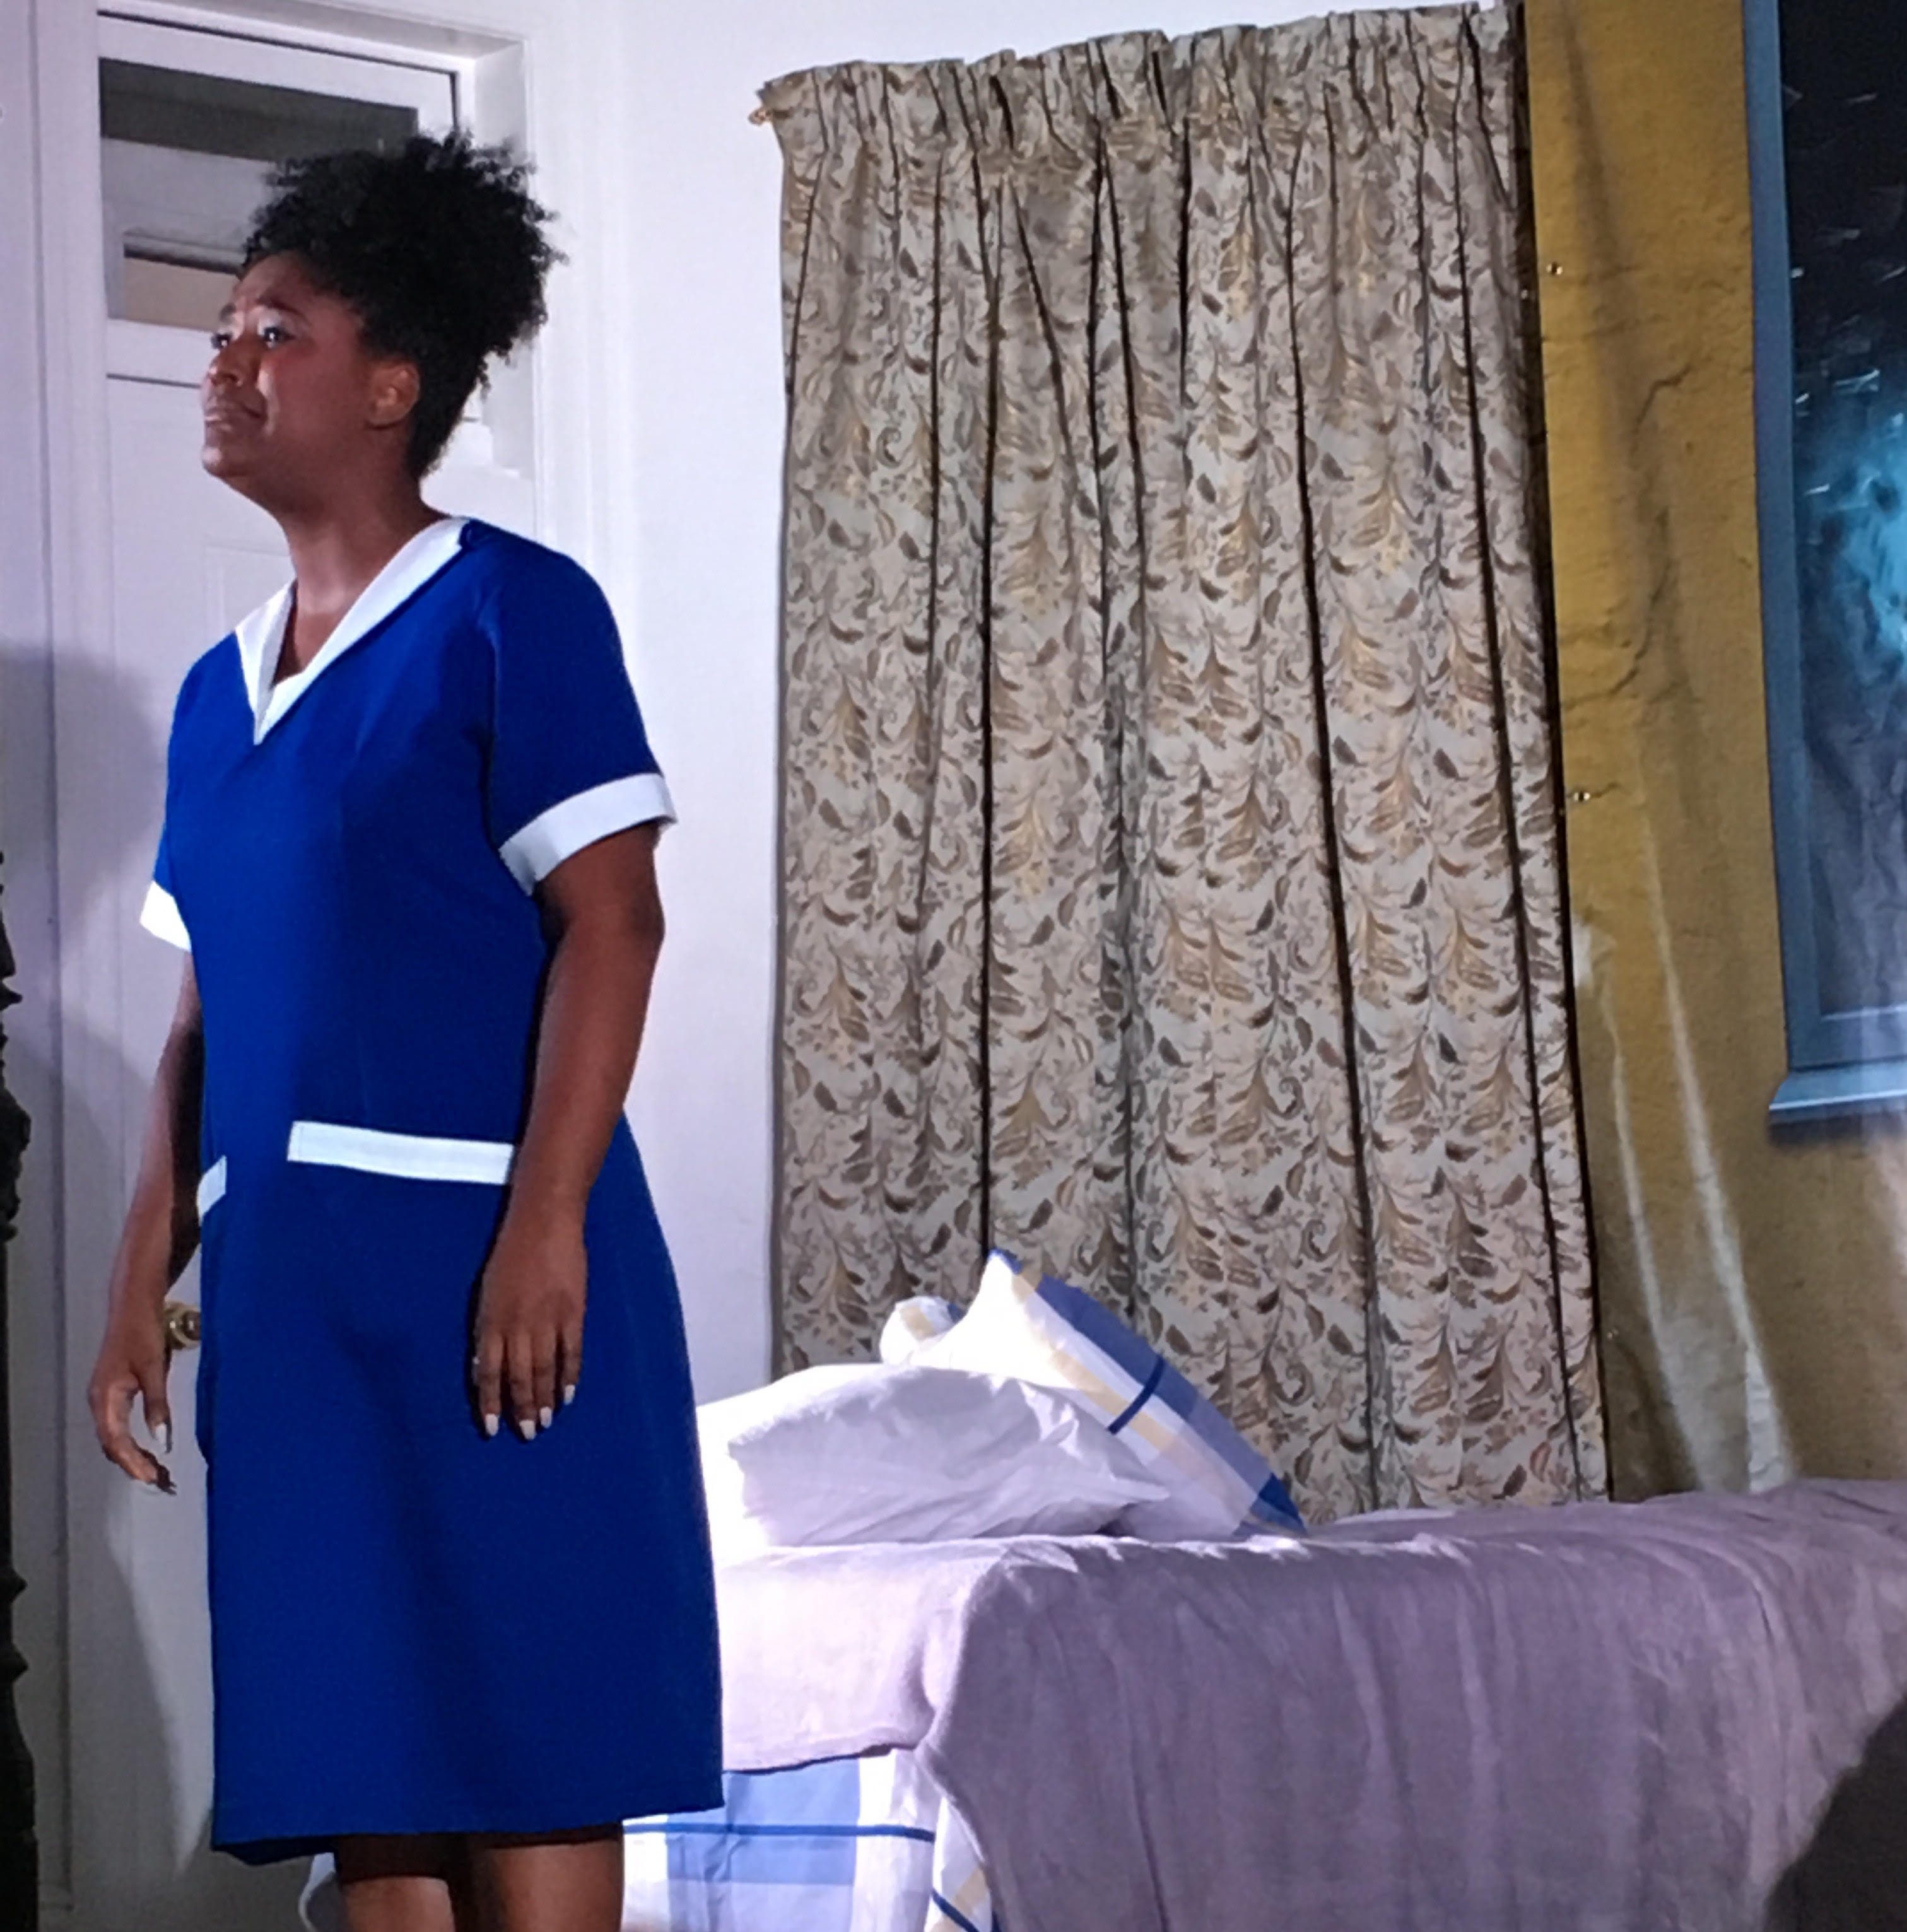 Alisha Taylor, an Abilene Christian University graduate, portrays a housekeeper at the Lorraine Motel in Memphis, Tennessee, who was working the day the Rev. Martin Luther King Jr. was assassinated there.